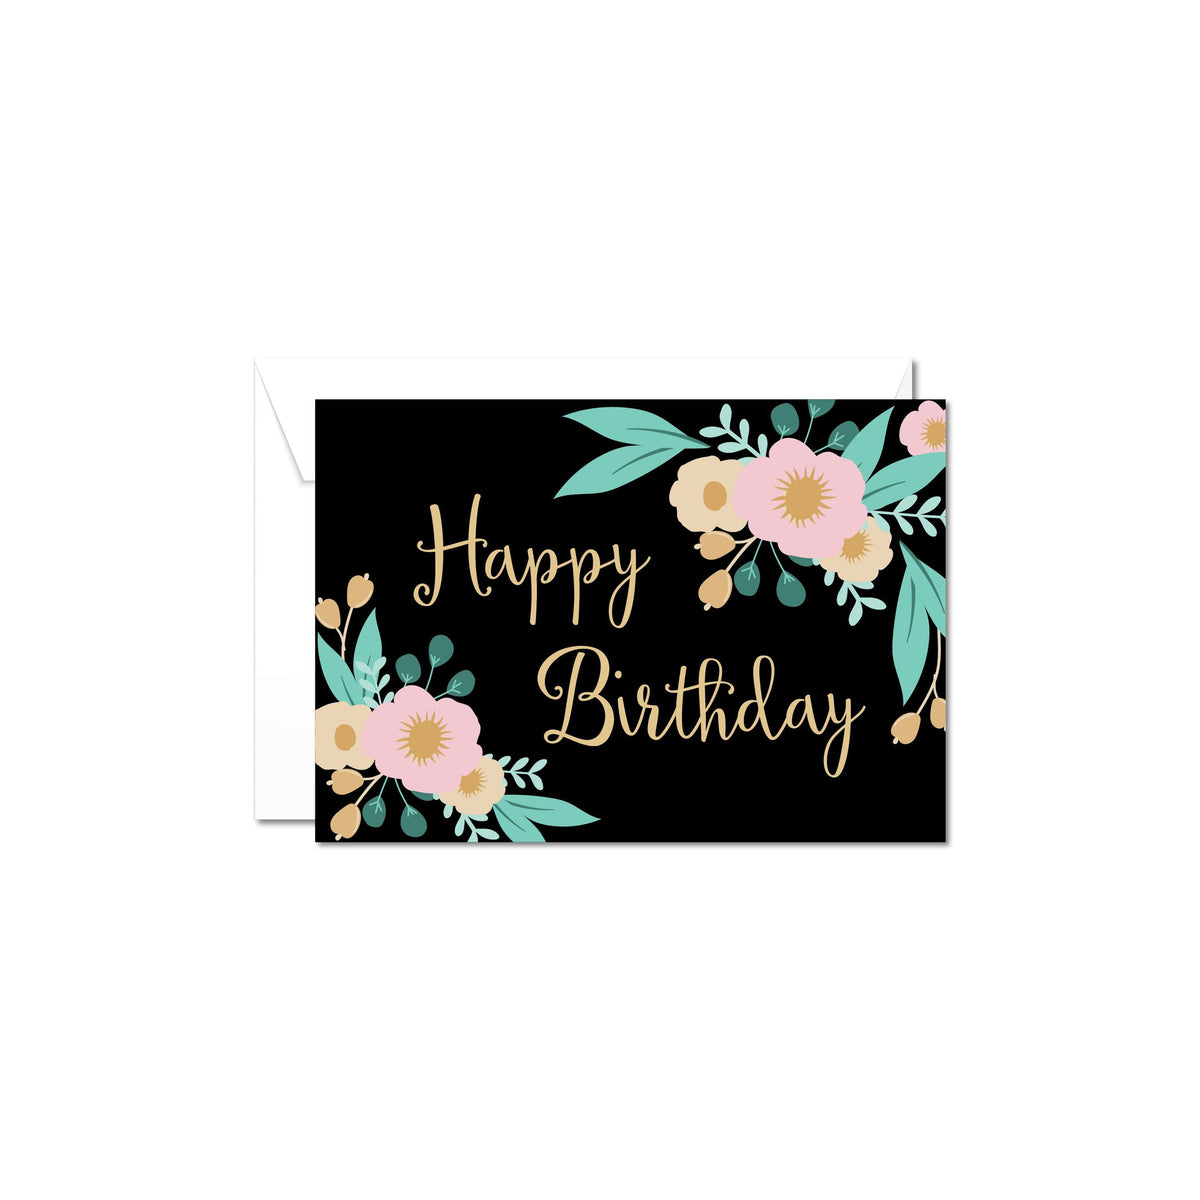 Happy birthday gift card nz online gifts easy delivery nz wide floral happy birthday card a perfect addition to your birthday gift box for her bookmarktalkfo Choice Image